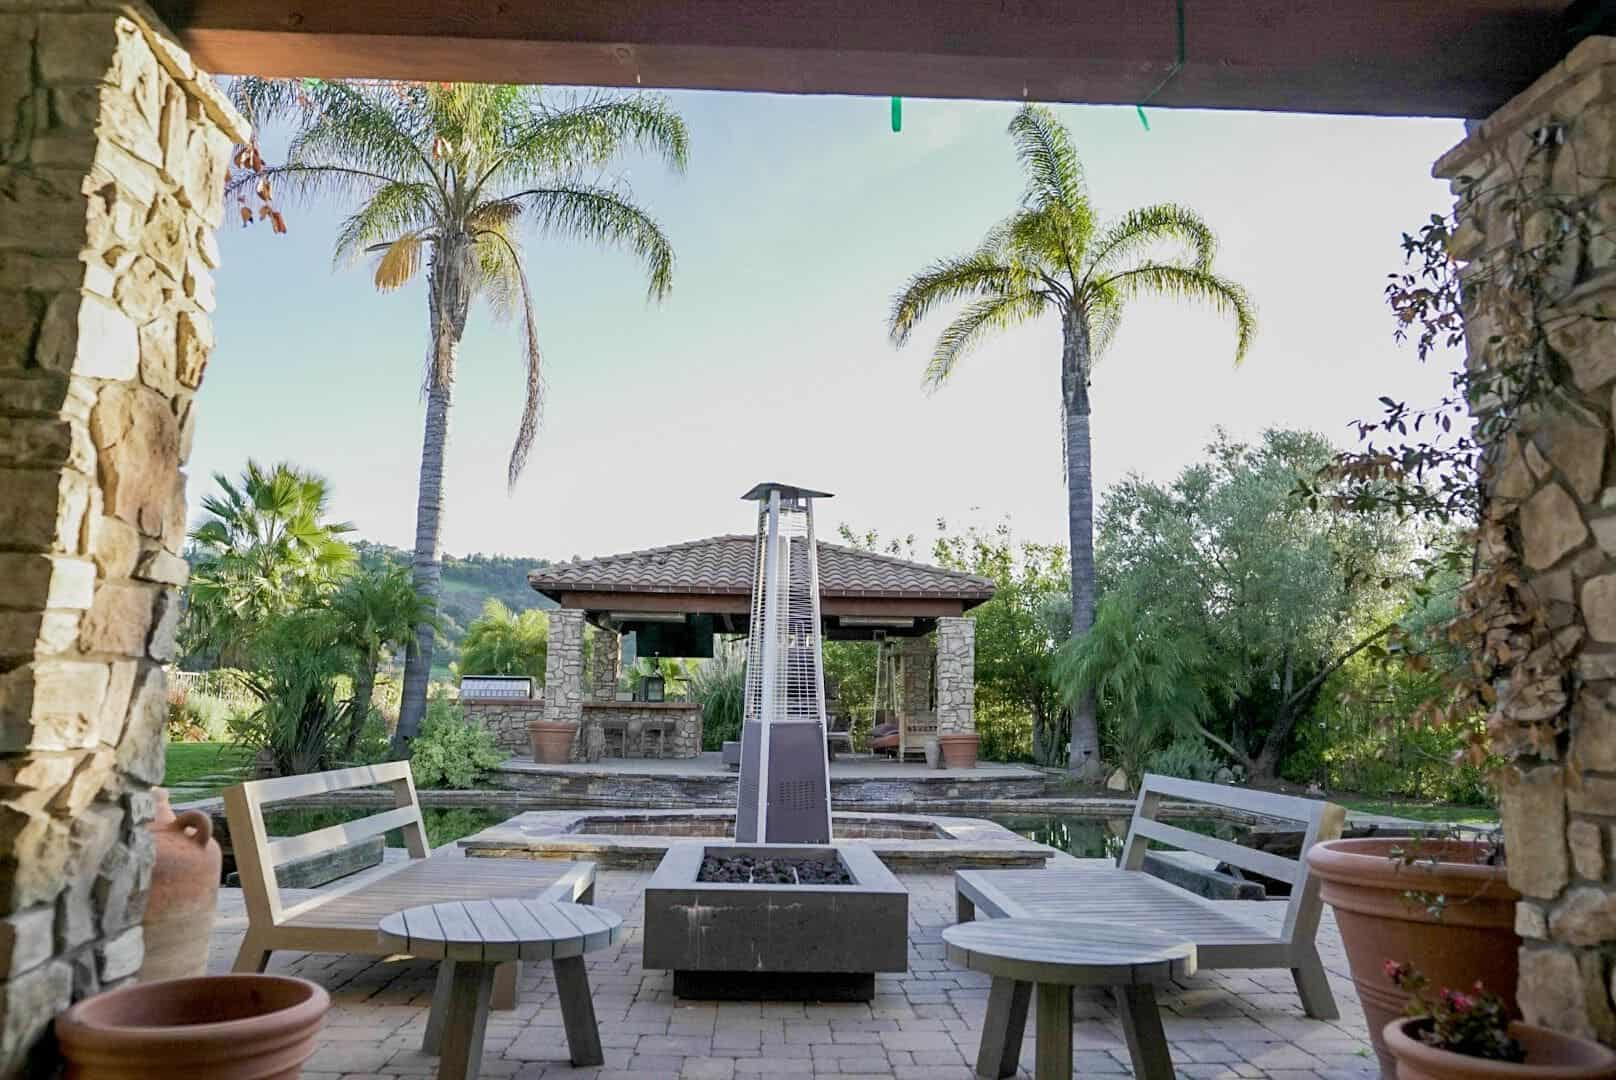 This patio in the backyard boasts a pair of large seats with a fire pit in the middle. It is also set near the swimming pool. Images courtesy of Toptenrealestatedeals.com.